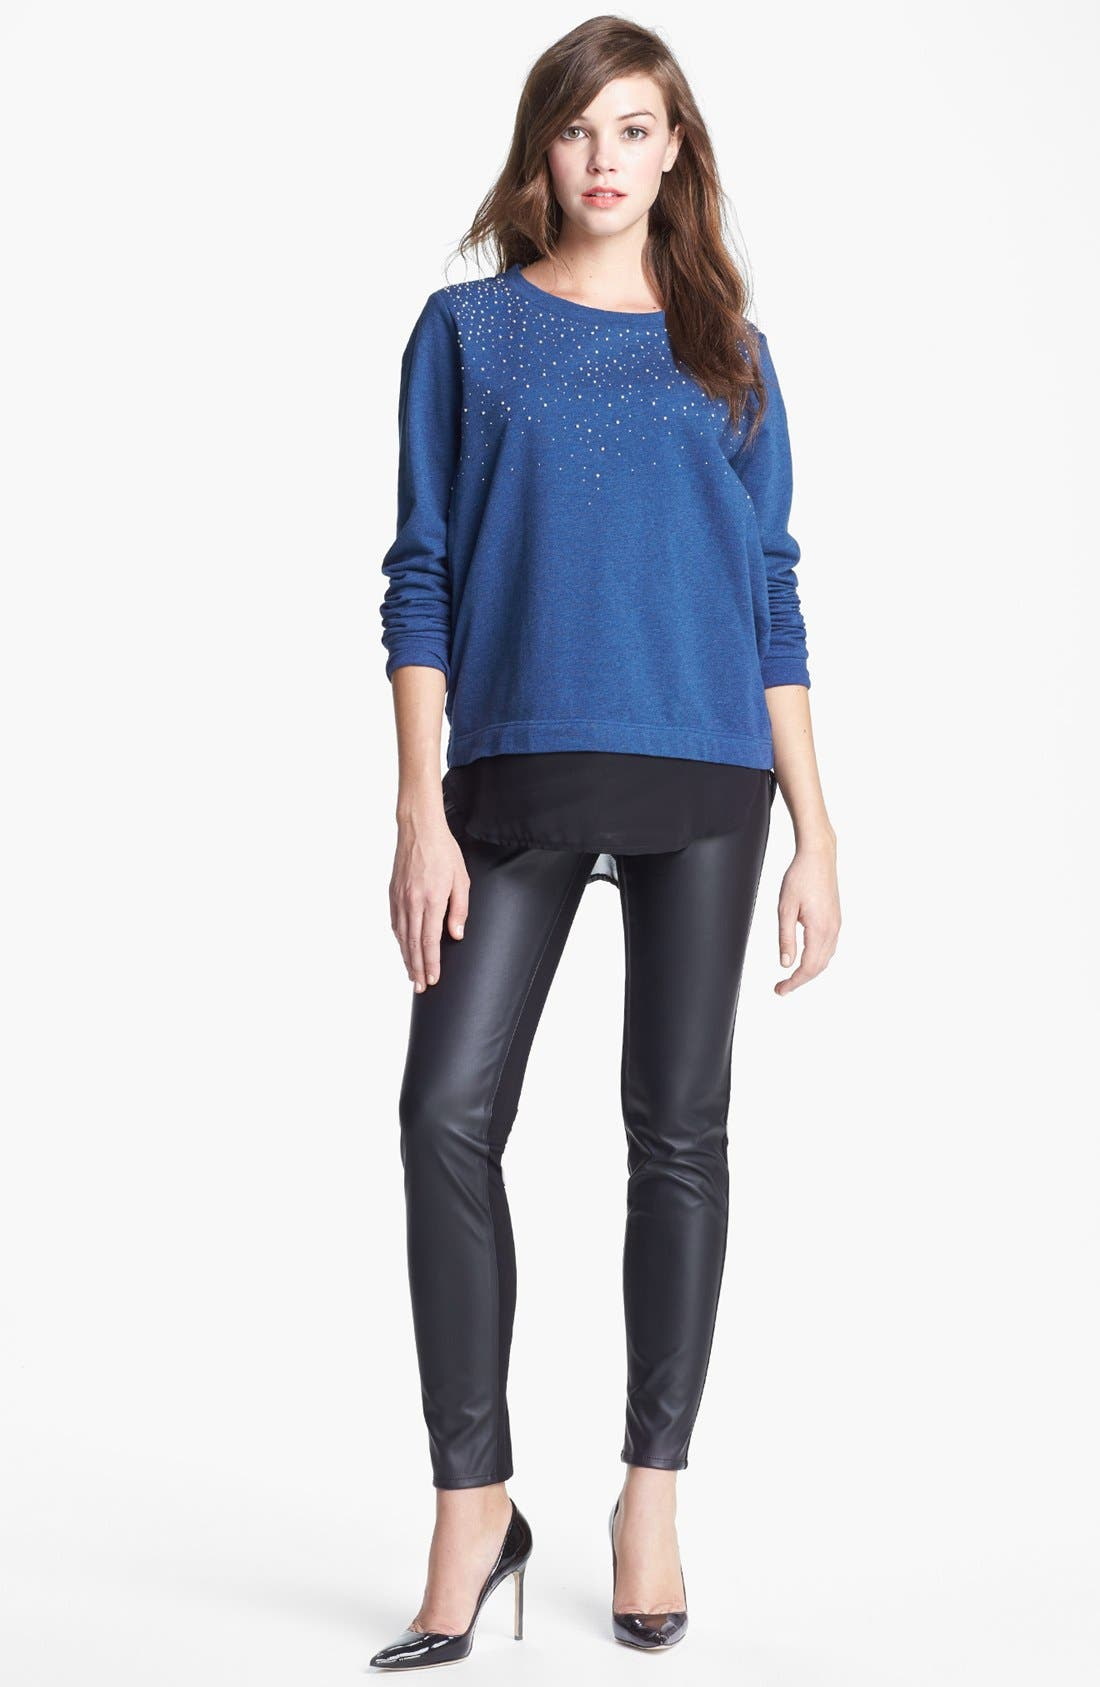 Alternate Image 1 Selected - Two by Vince Camuto Embellished Chiffon Shirttail Sweatshirt